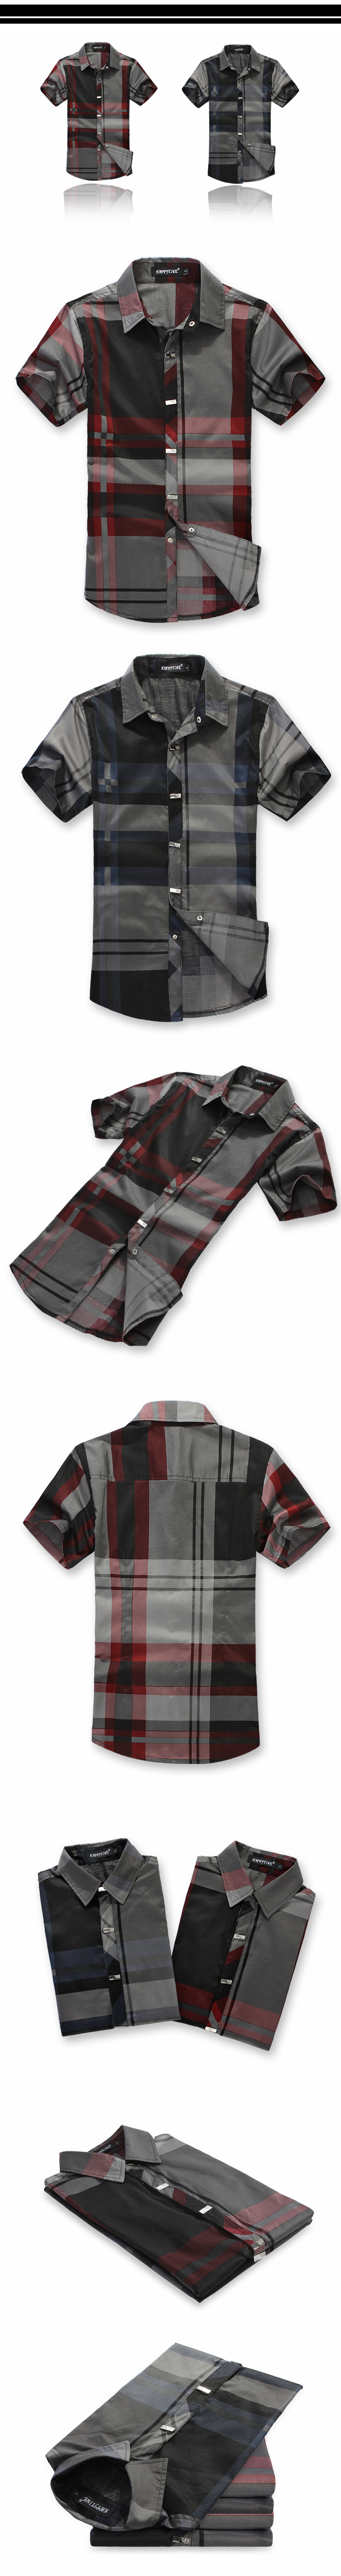 YW Korean slim spring new shirts men's short sleeve Plaid men's shirt trend of leisure wear clothing